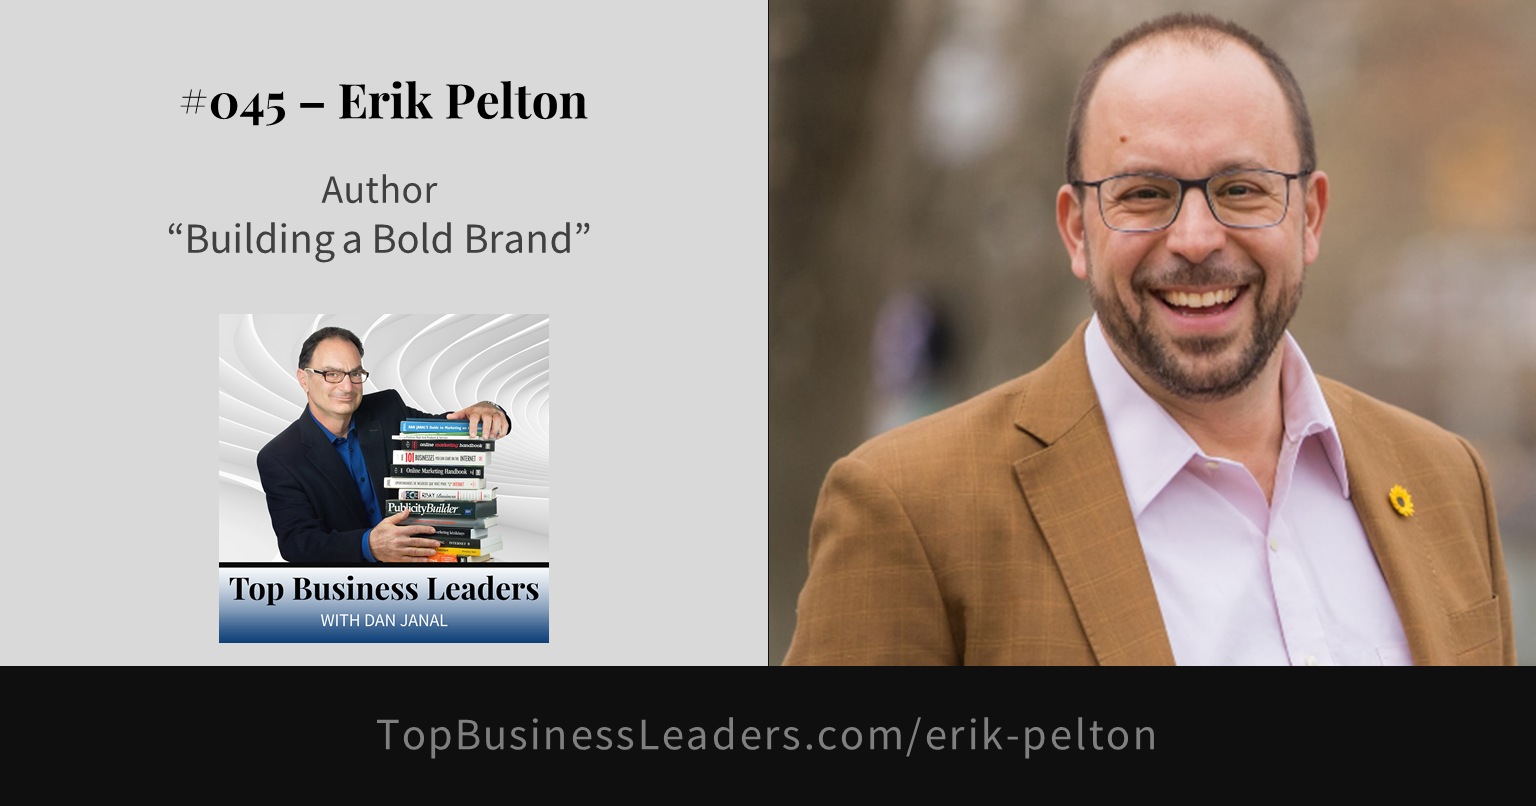 erik-pelton-author-building-a-bold-brand